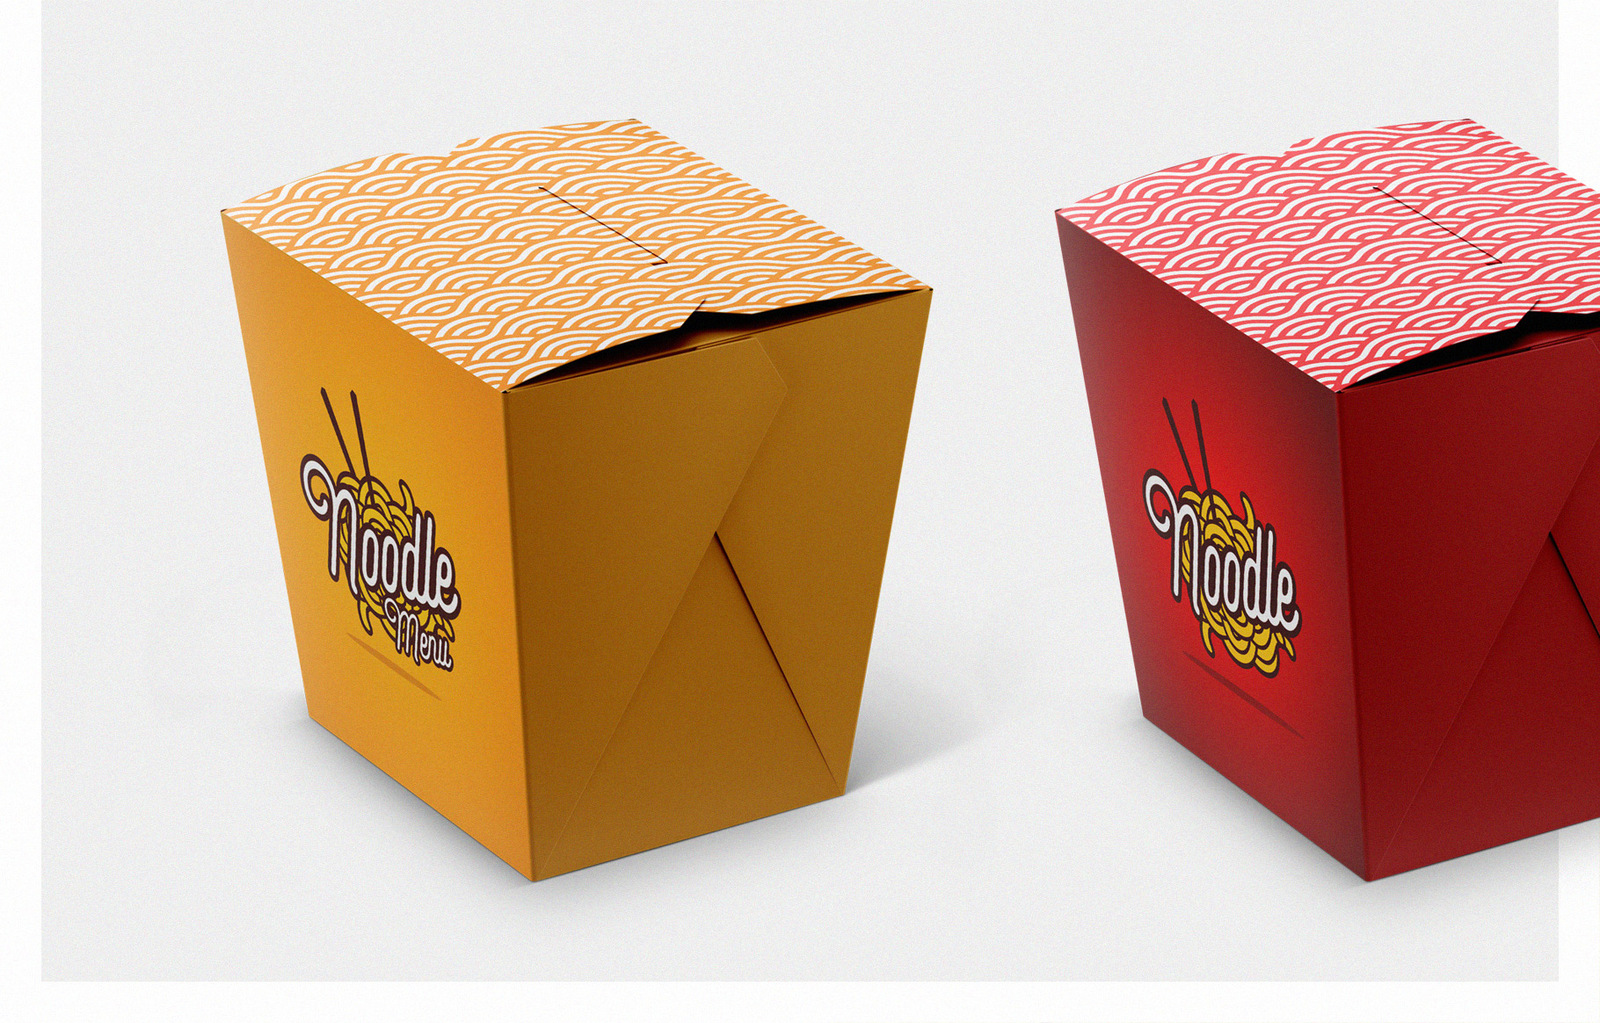 Download Noodles Box Mockup Set In Packaging Mockups On Yellow Images Creative Store